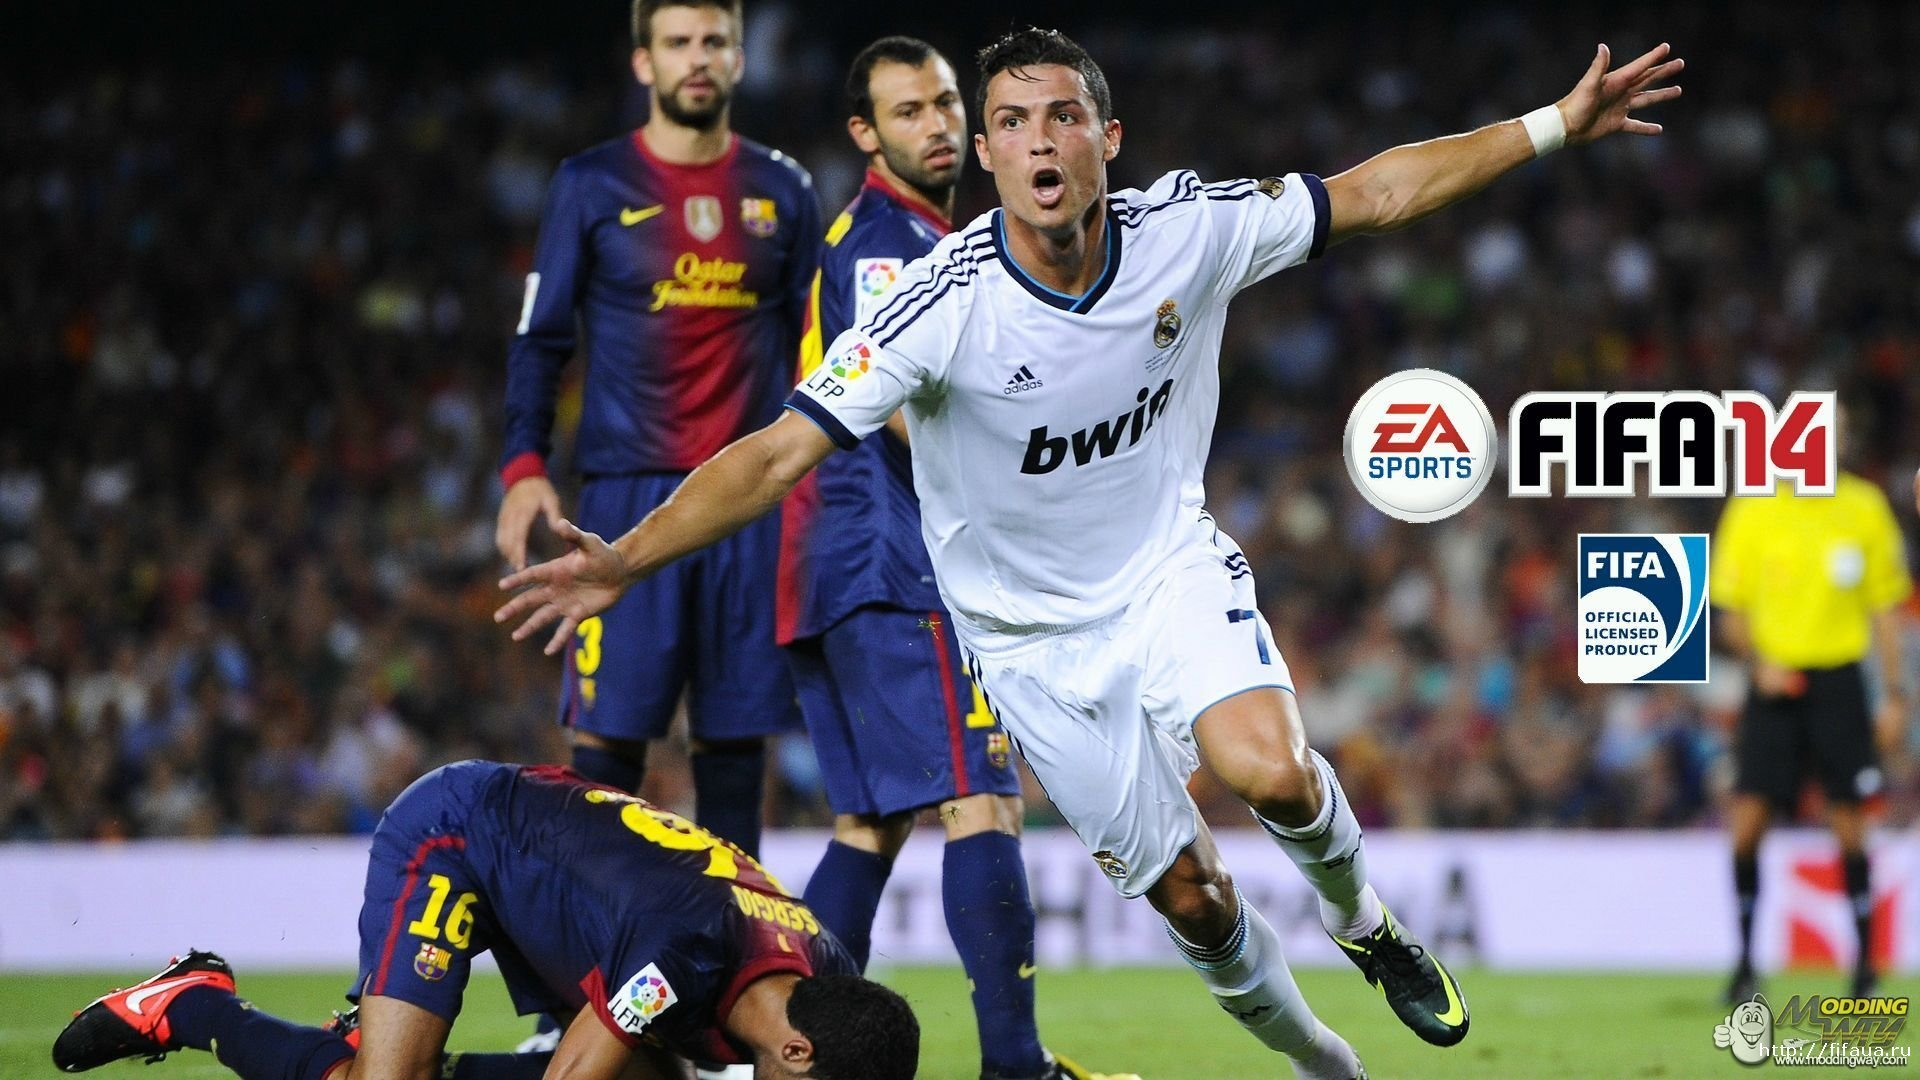 Fifa 14 world cup soccer game fifa14 68 wallpaper 1920x1080 fifa 14 world cup soccer game fifa14 68 wallpaper 1920x1080 362127 wallpaperup voltagebd Image collections